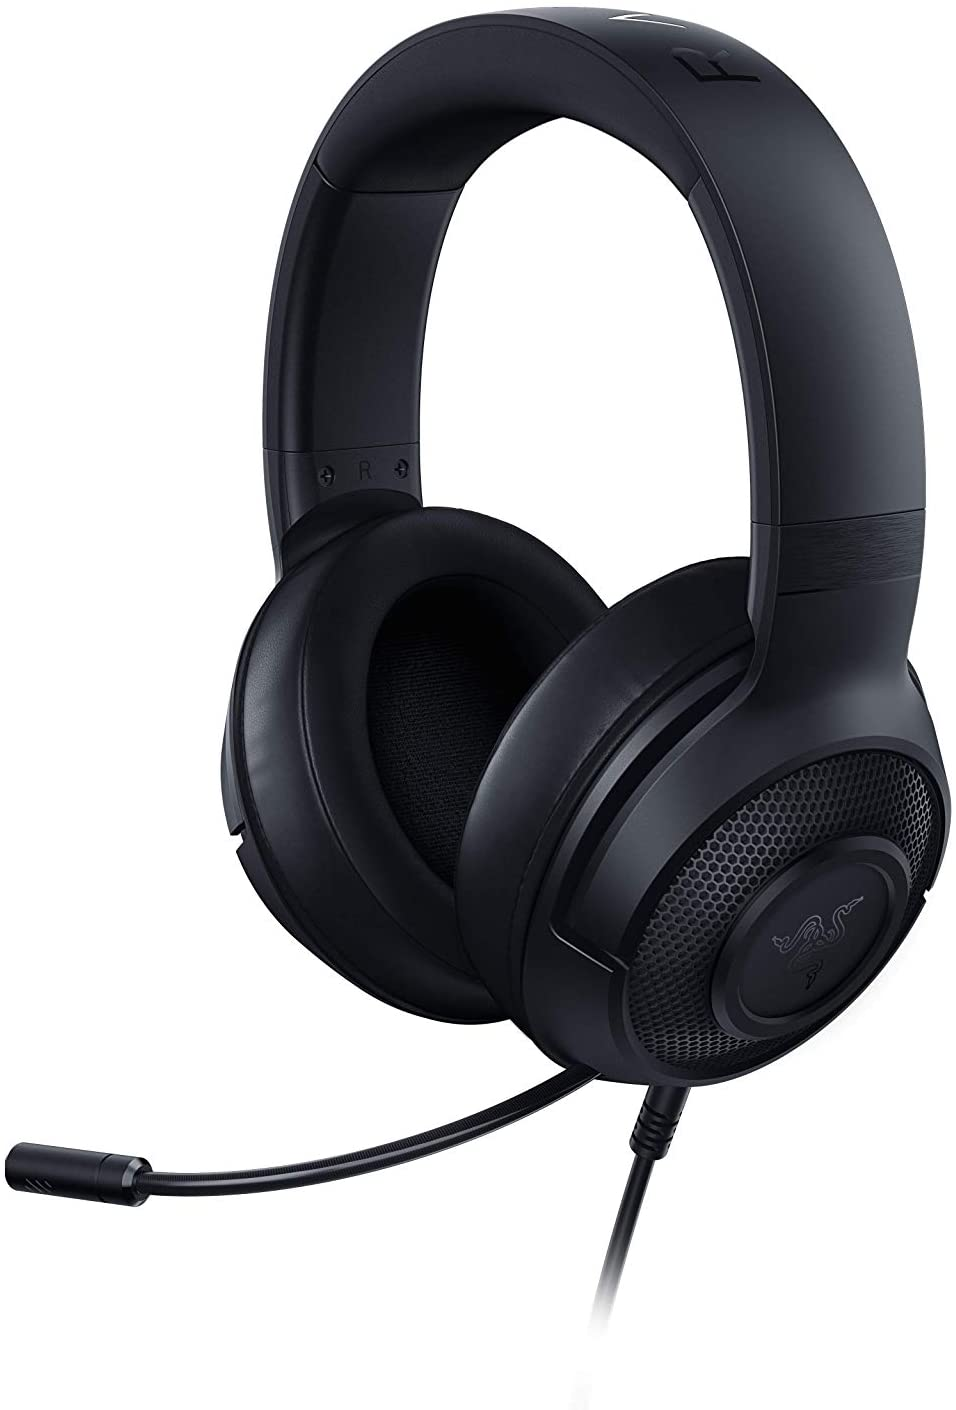 RZ04-02890100-R3U1 Razer kraken X Multi-platform wired gaming headset UPC 811659032867 - 2071MALL